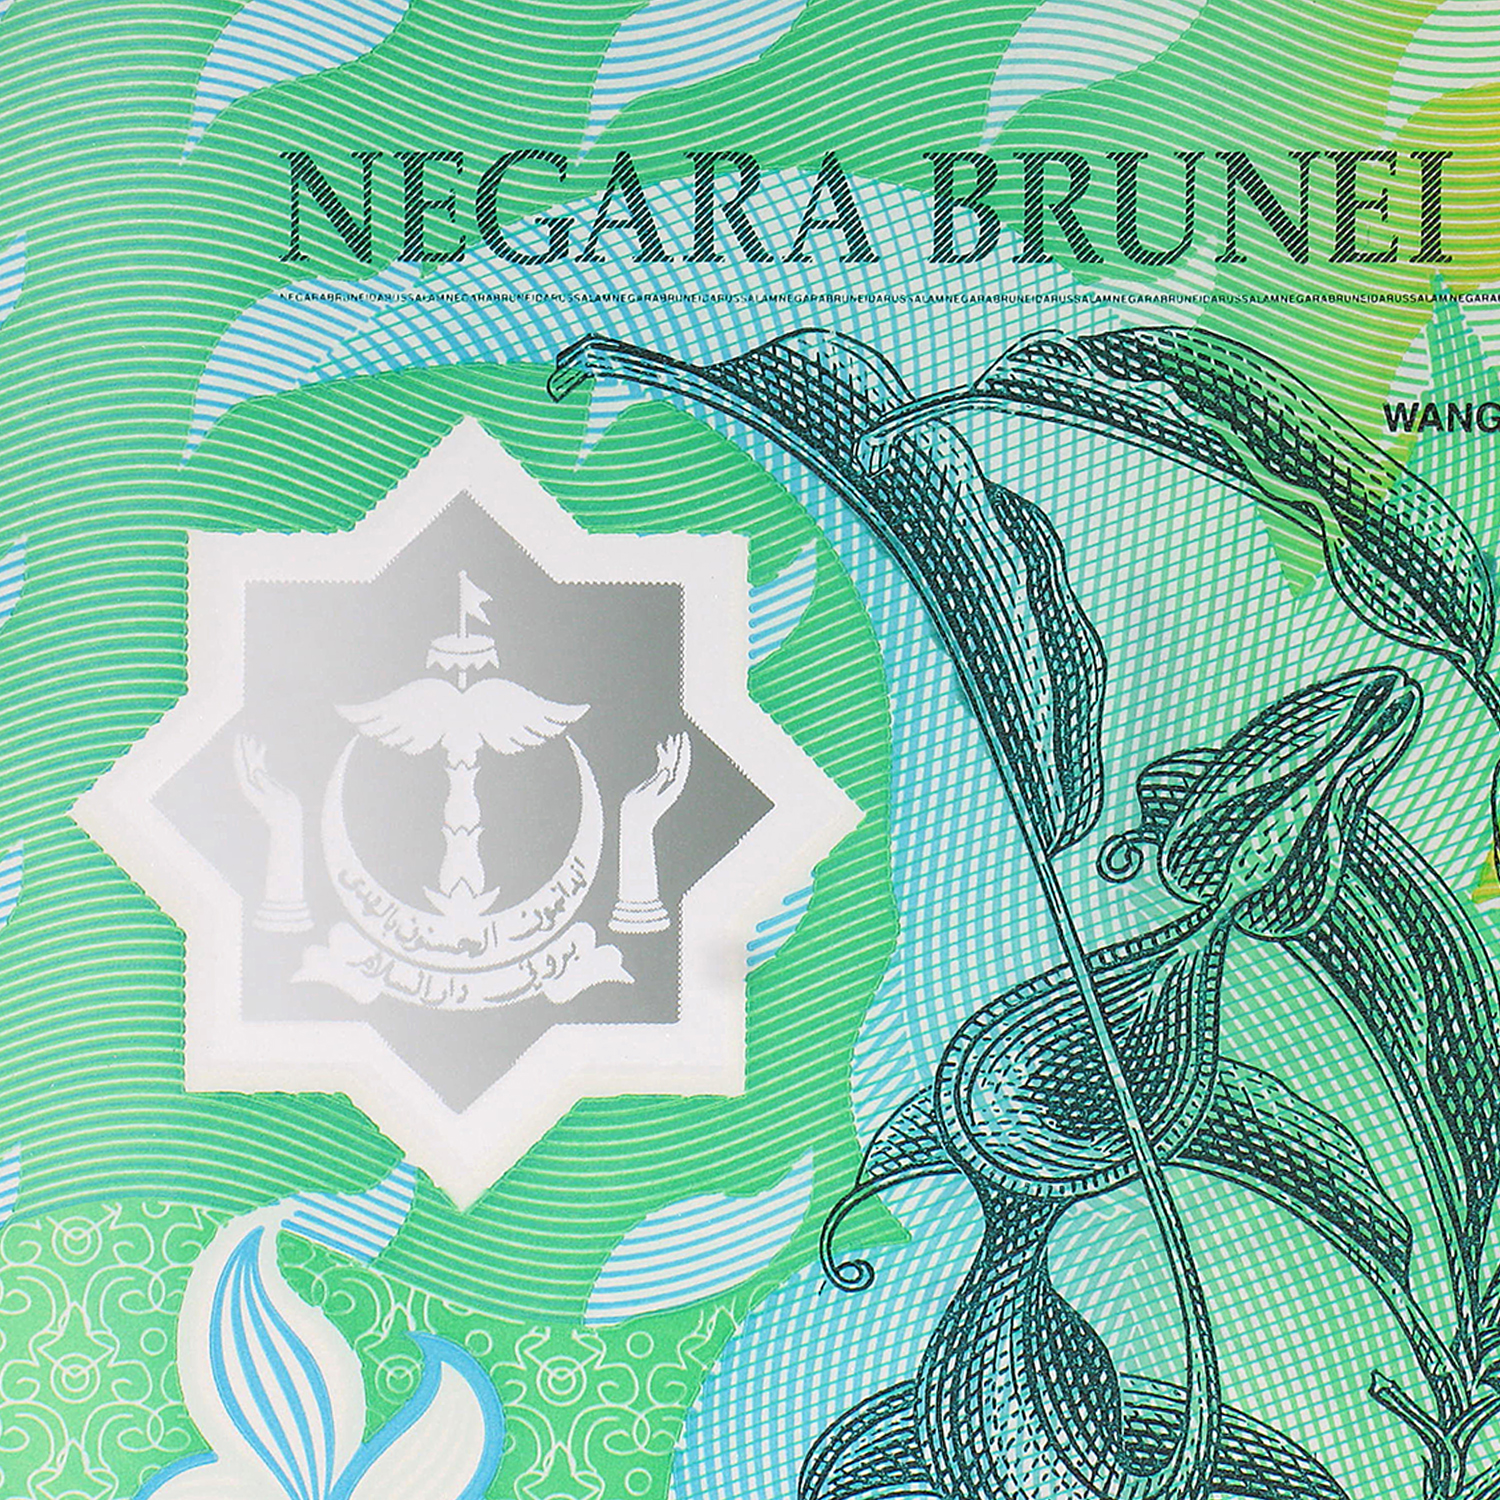 1996 Brunei 5 Ringgit Polymer Unc Pitcher Plant Rainforest P#23